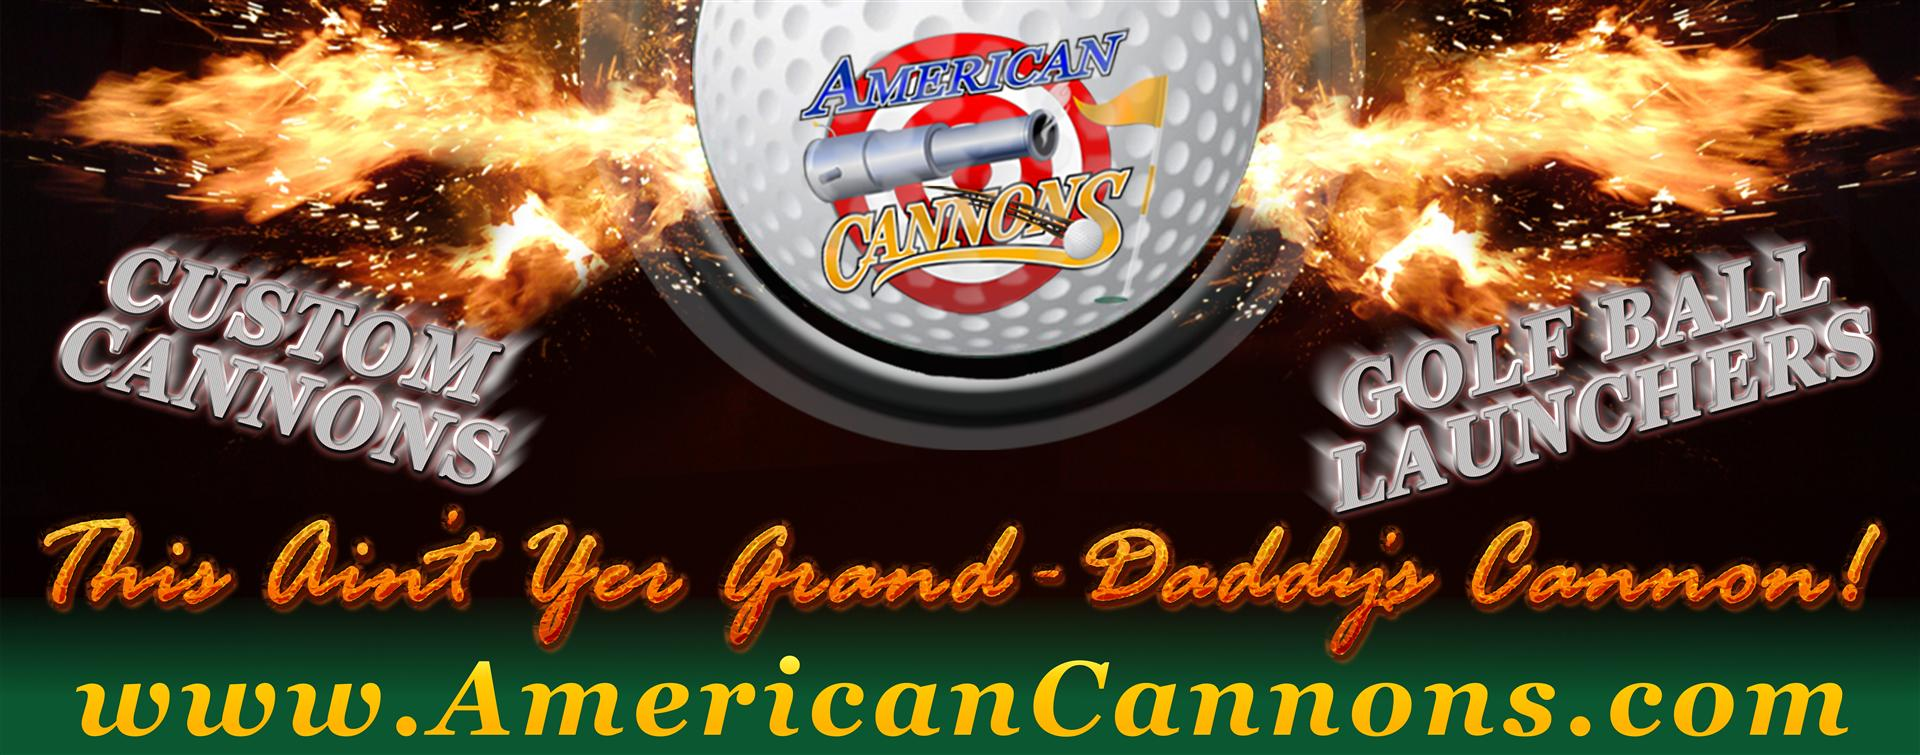 American Cannons Black Powder Golf Ball Launching Cannons